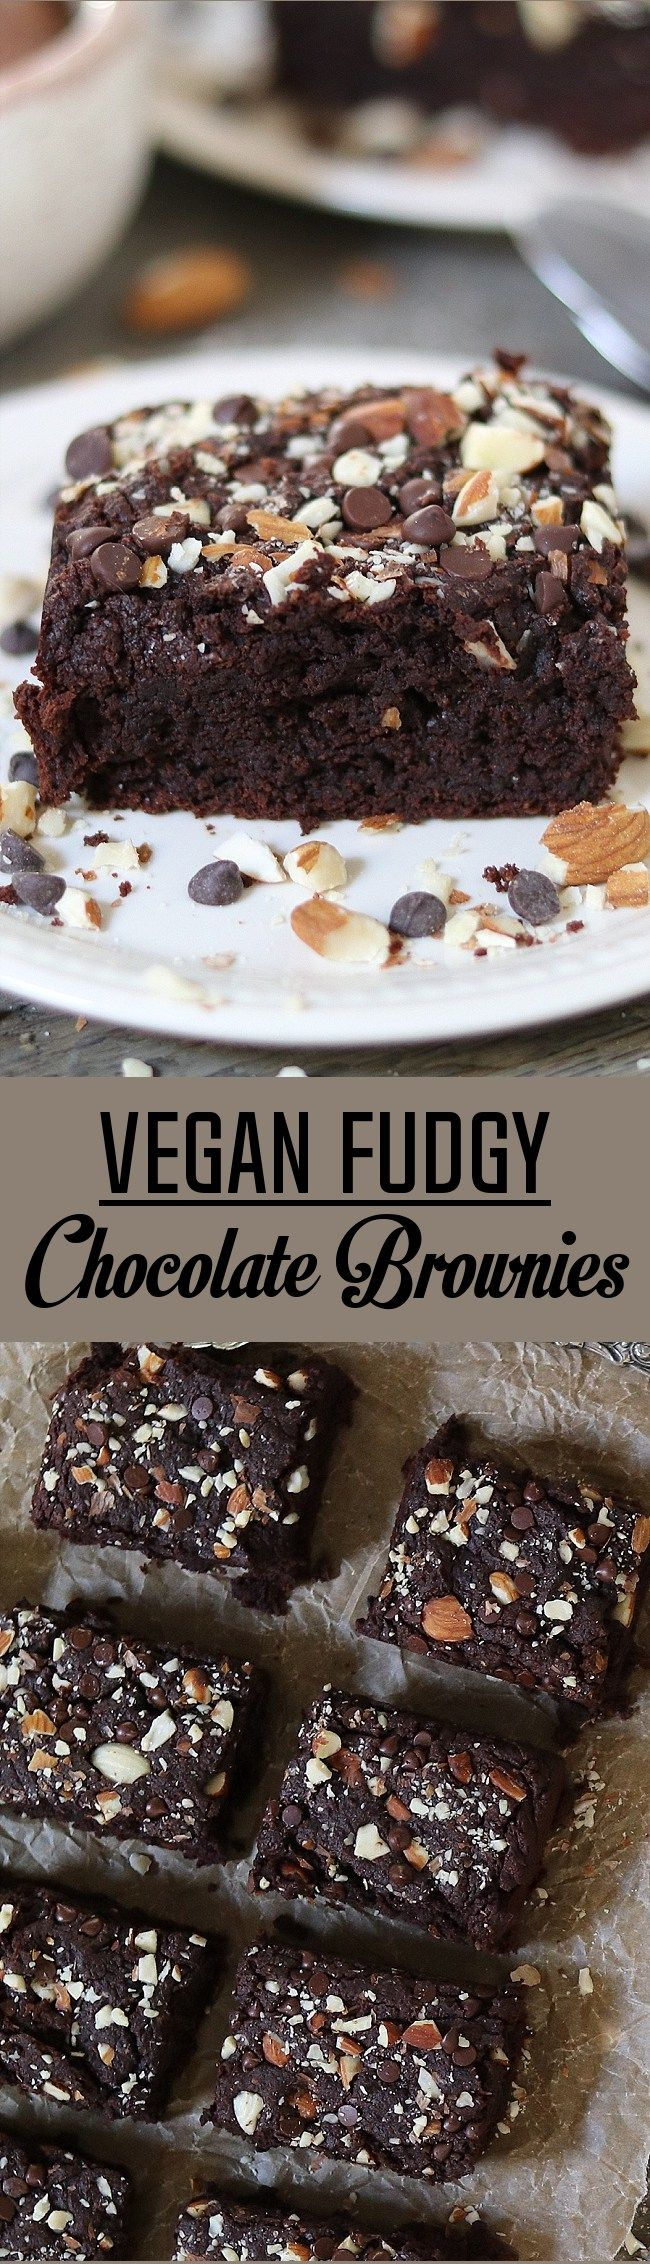 These Vegan Fudgy Chocolate Brownies are super chocolatey, nutty, and delicious. Made without oil or gluten. You guys…I seriously have the best recipe for Chocolate Brownies EVER! It's straight out of…